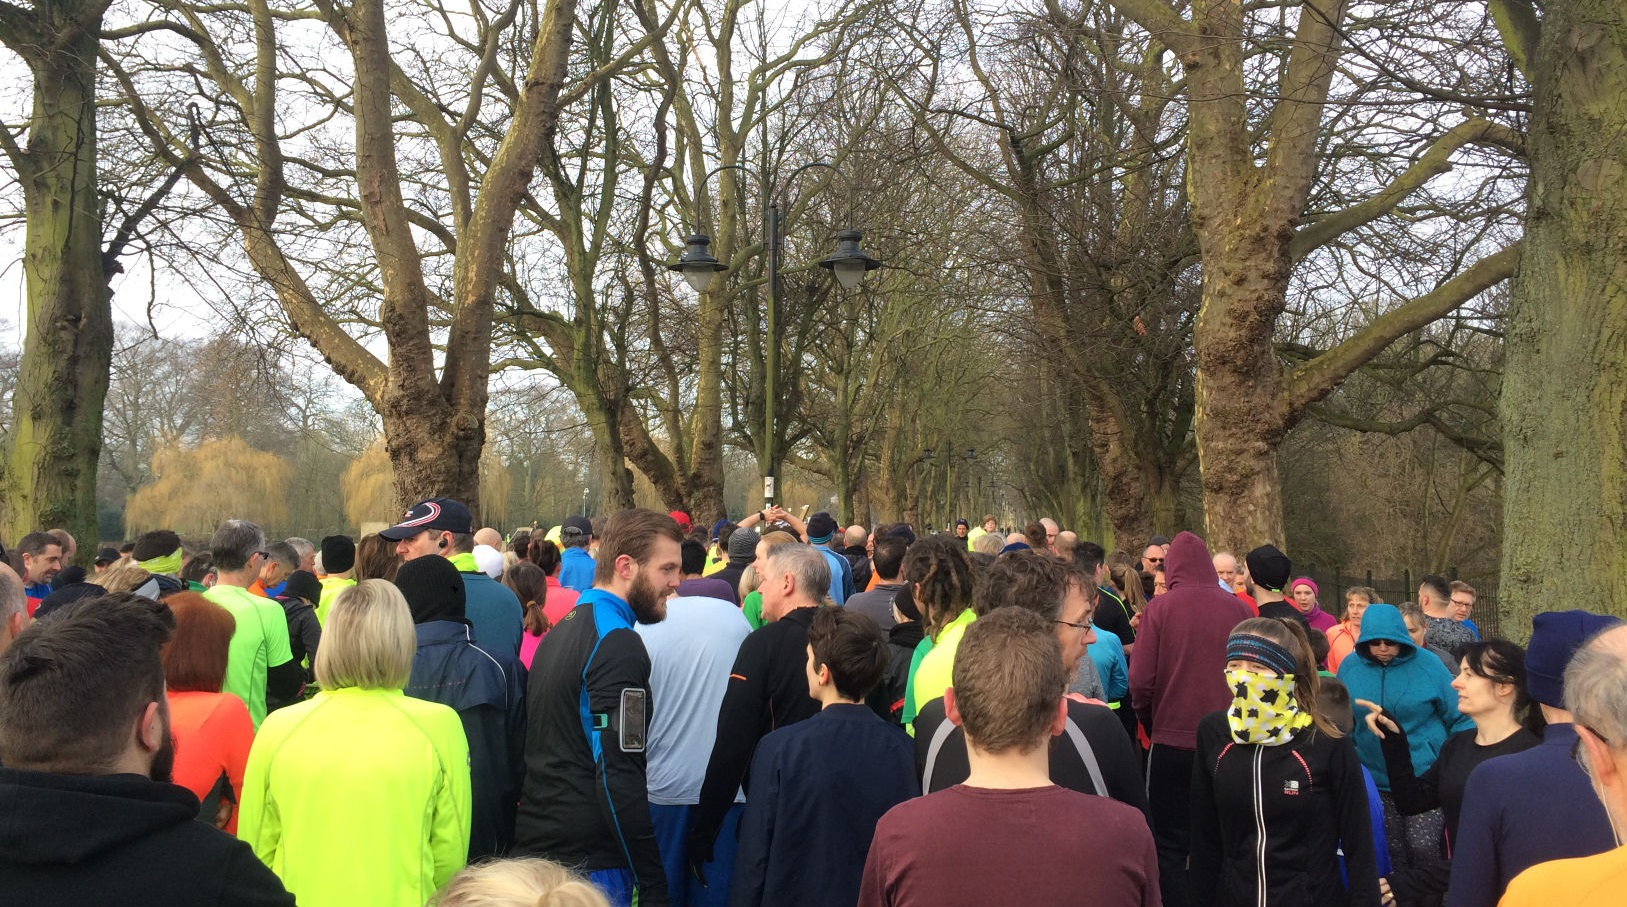 Kings Lynn parkrun - UK's prettiest?